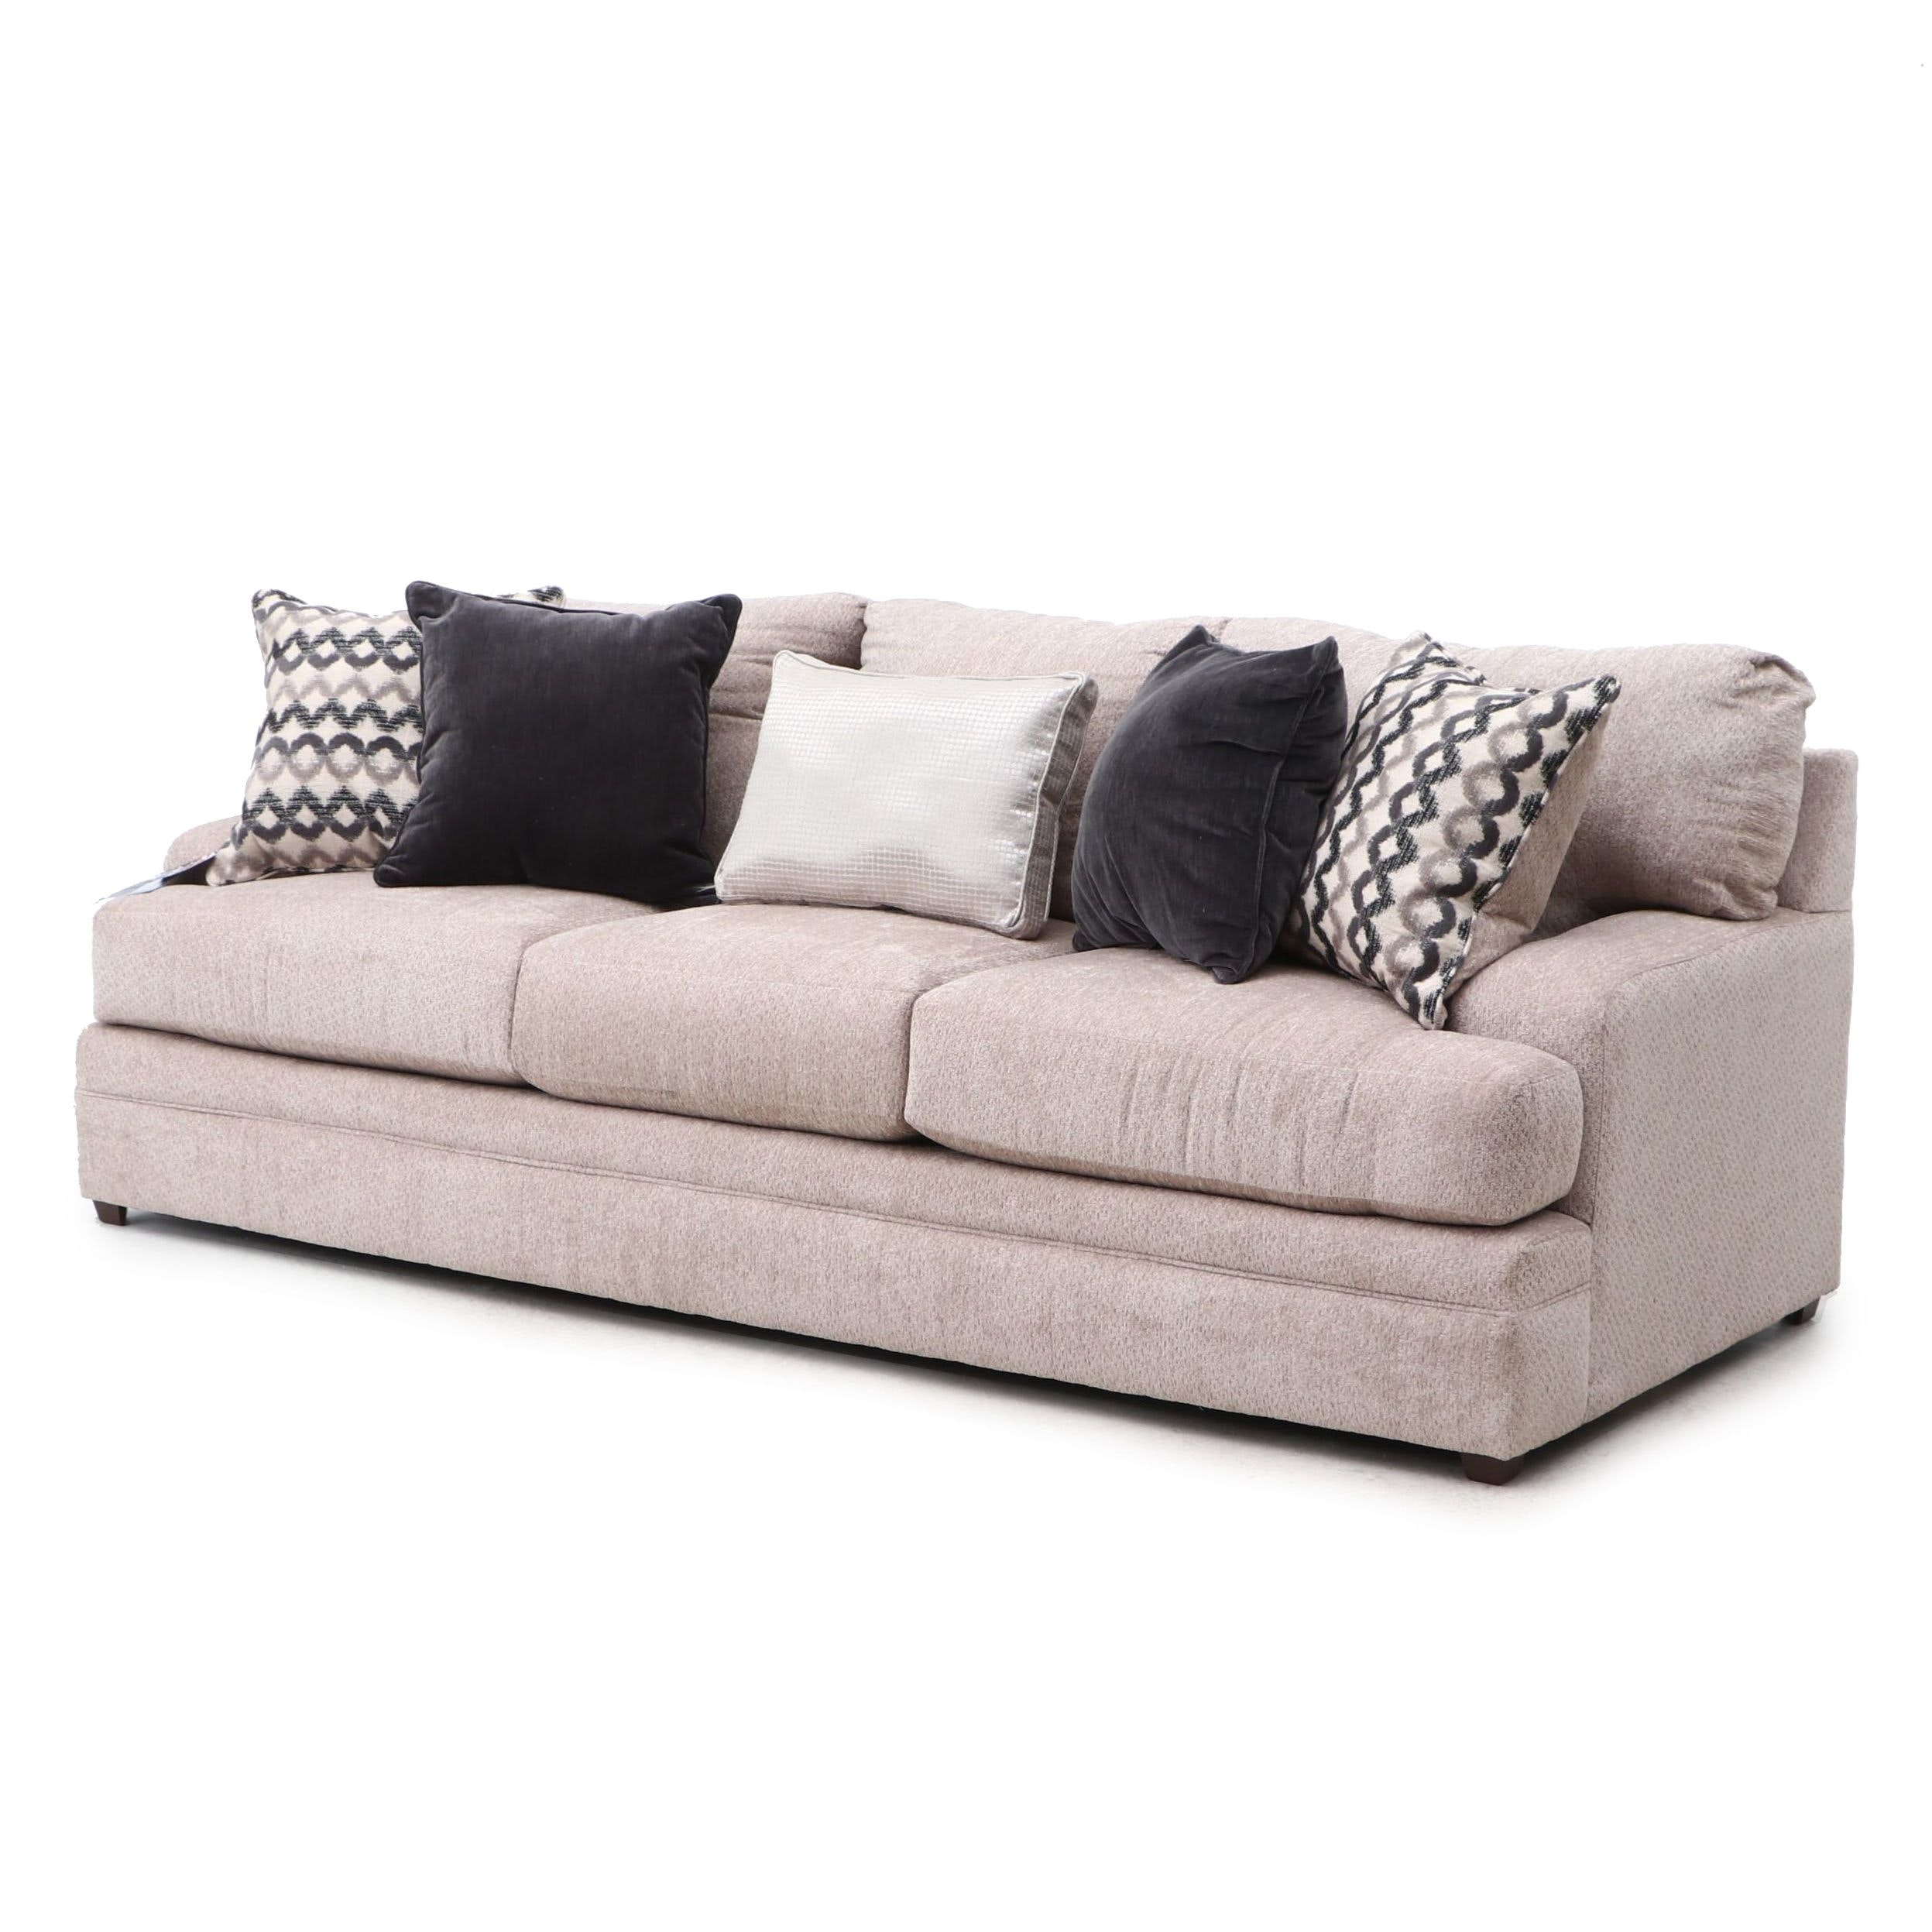 Sofa by United Furniture Industries